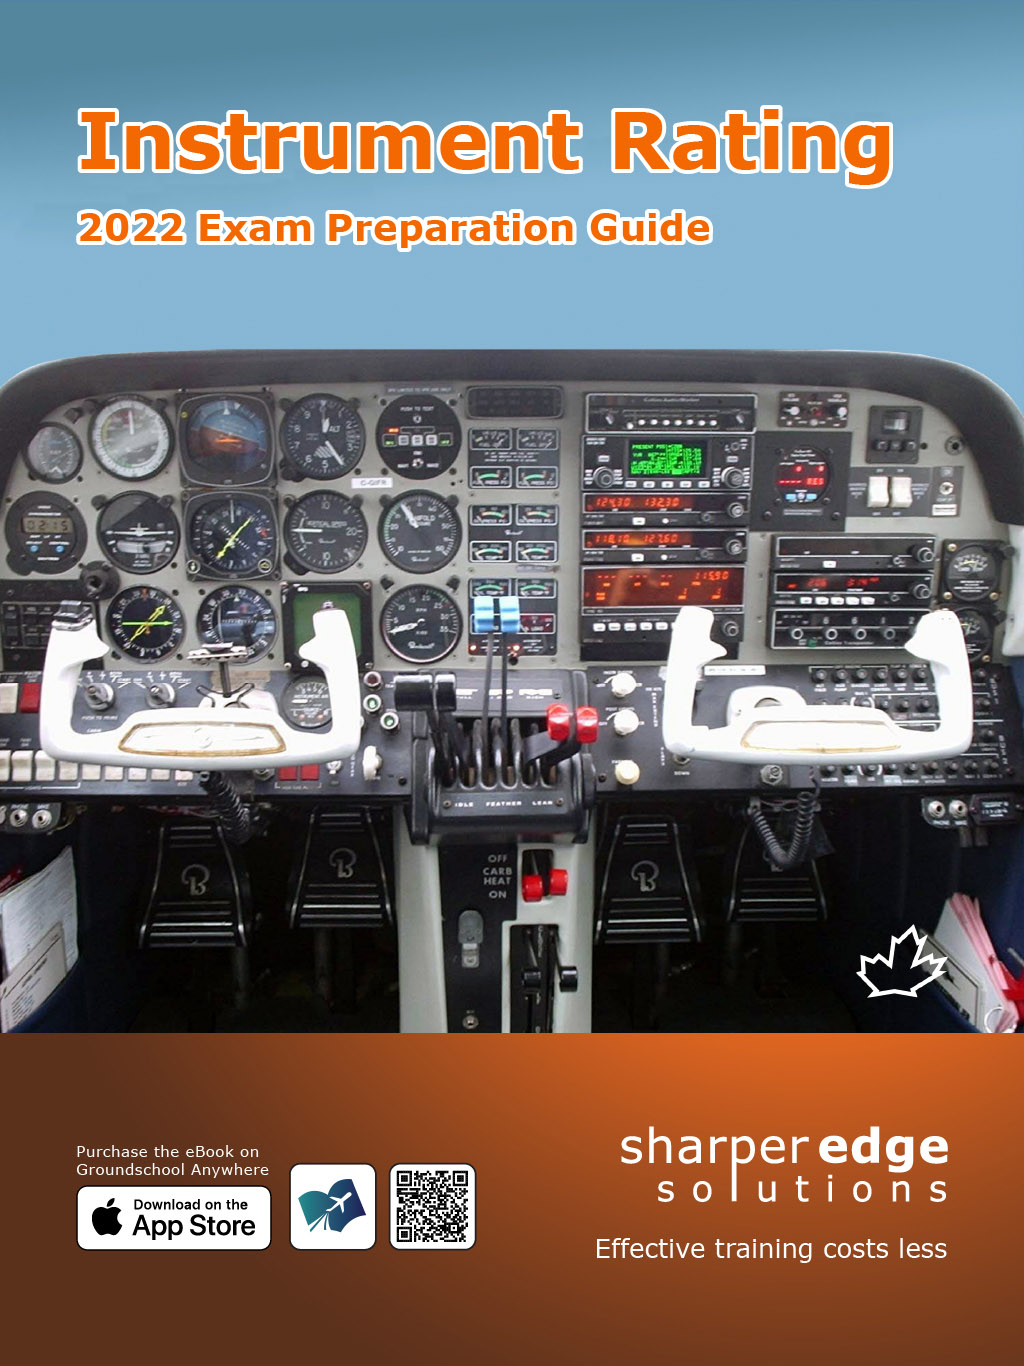 2019 Instrument Rating Exam Preparation GuideCover